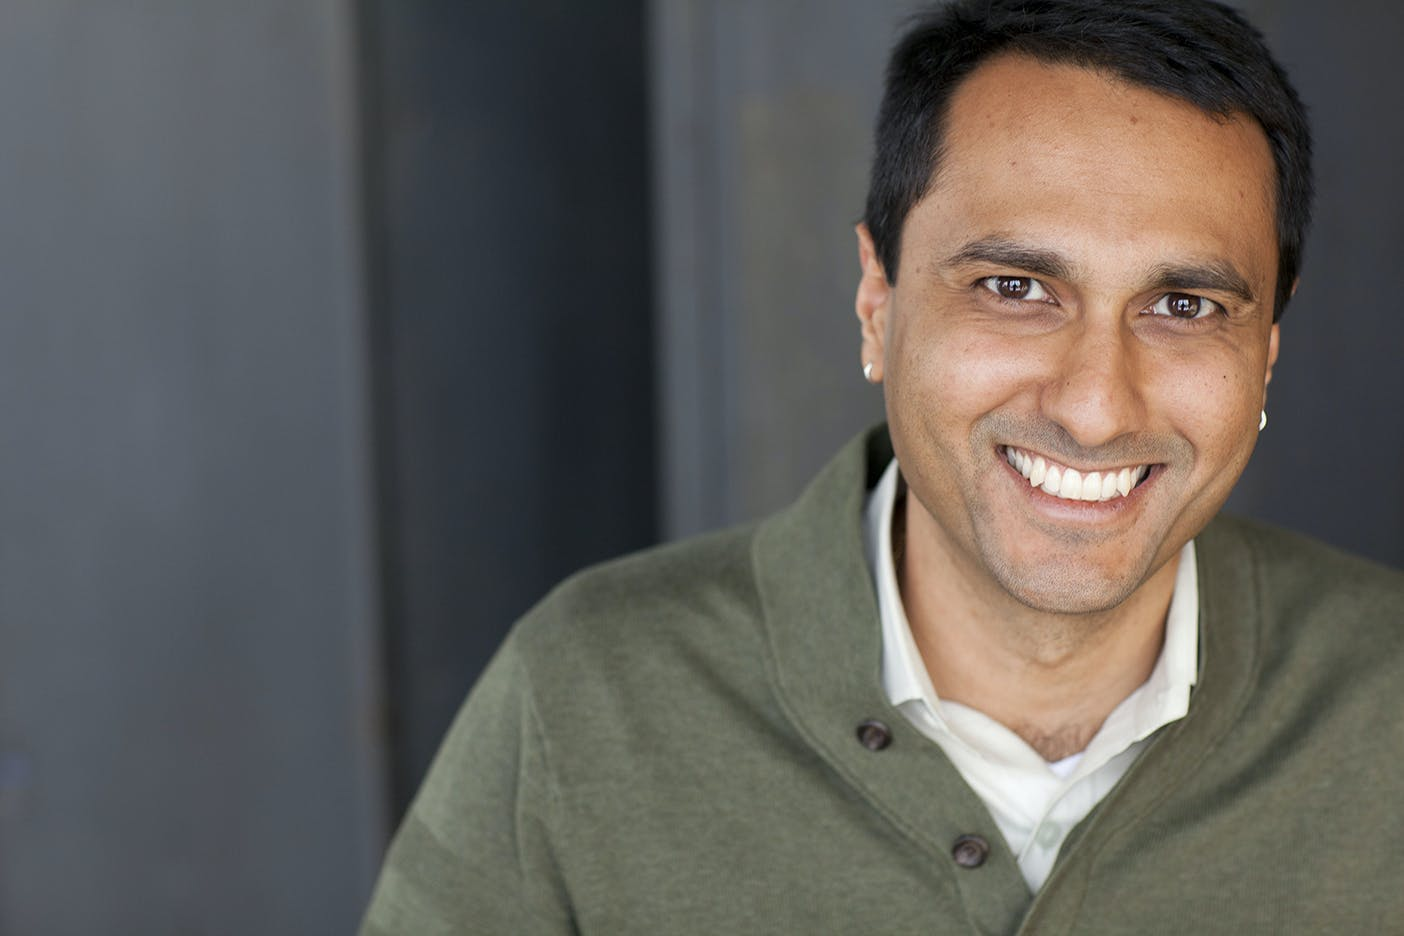 Nationally Known Interfaith Leader Eboo Patel Visits Bethel